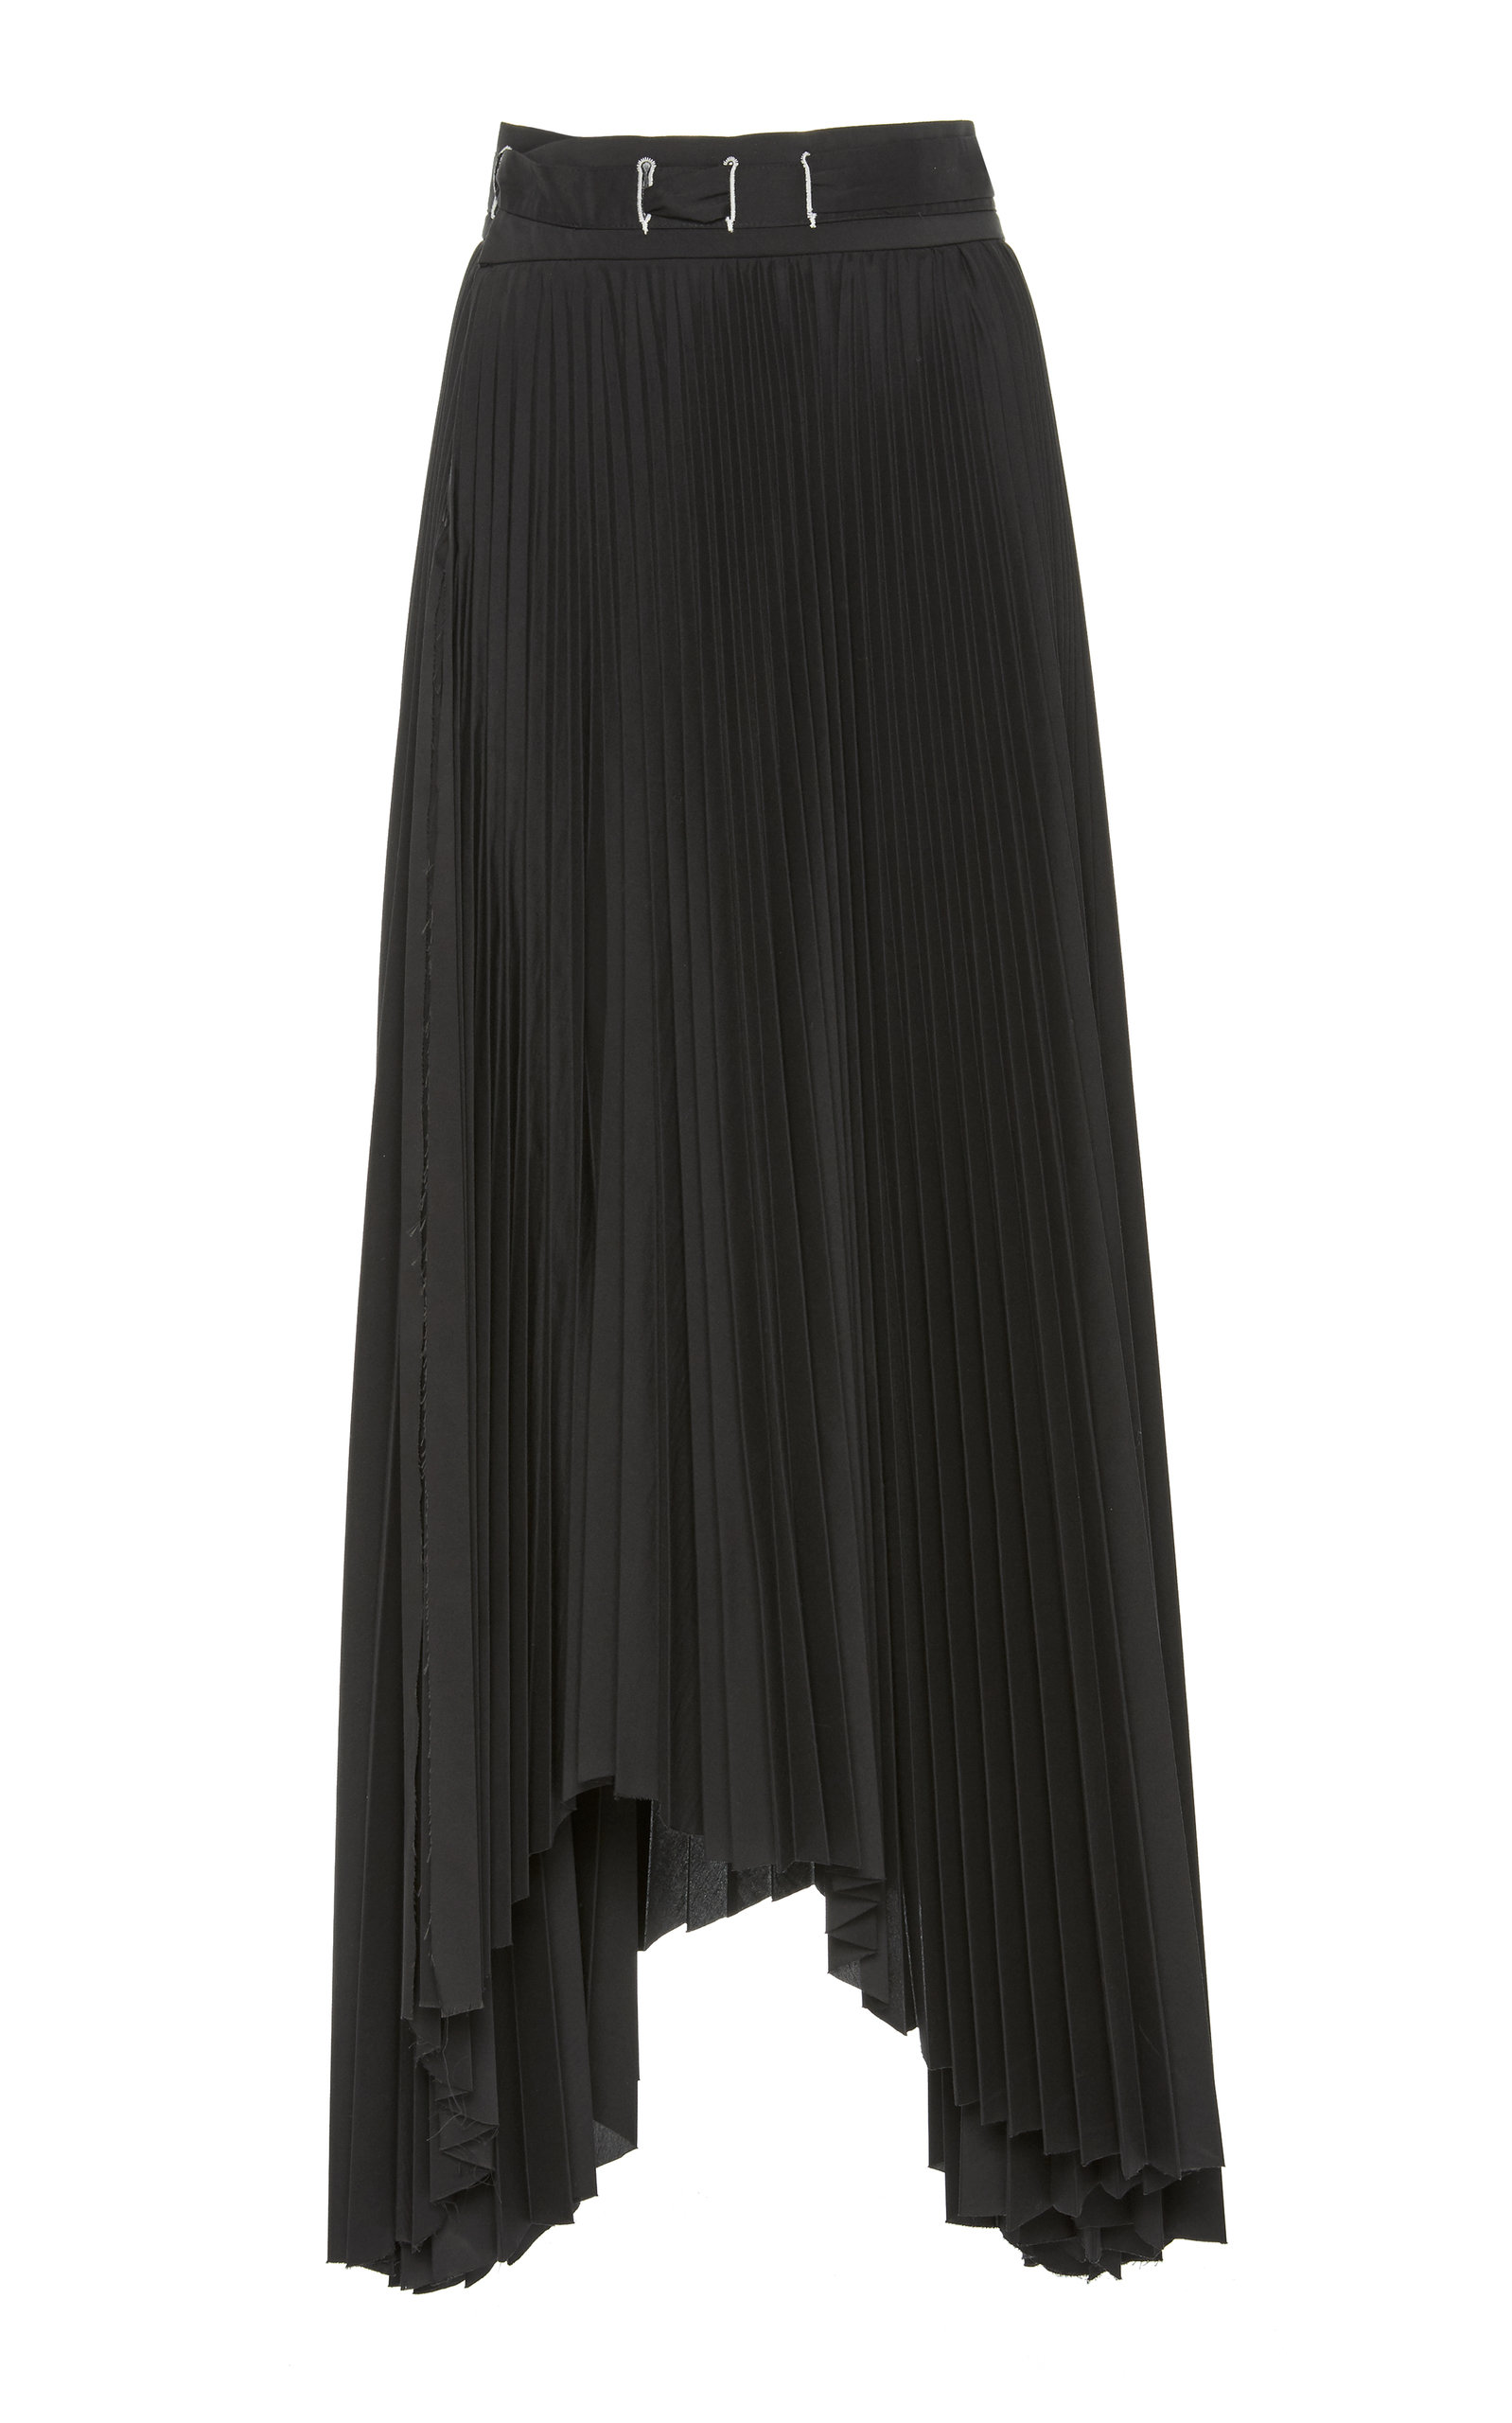 A.W.A.K.E. Asymmetric Pleated Poplin Midi Skirt, Black